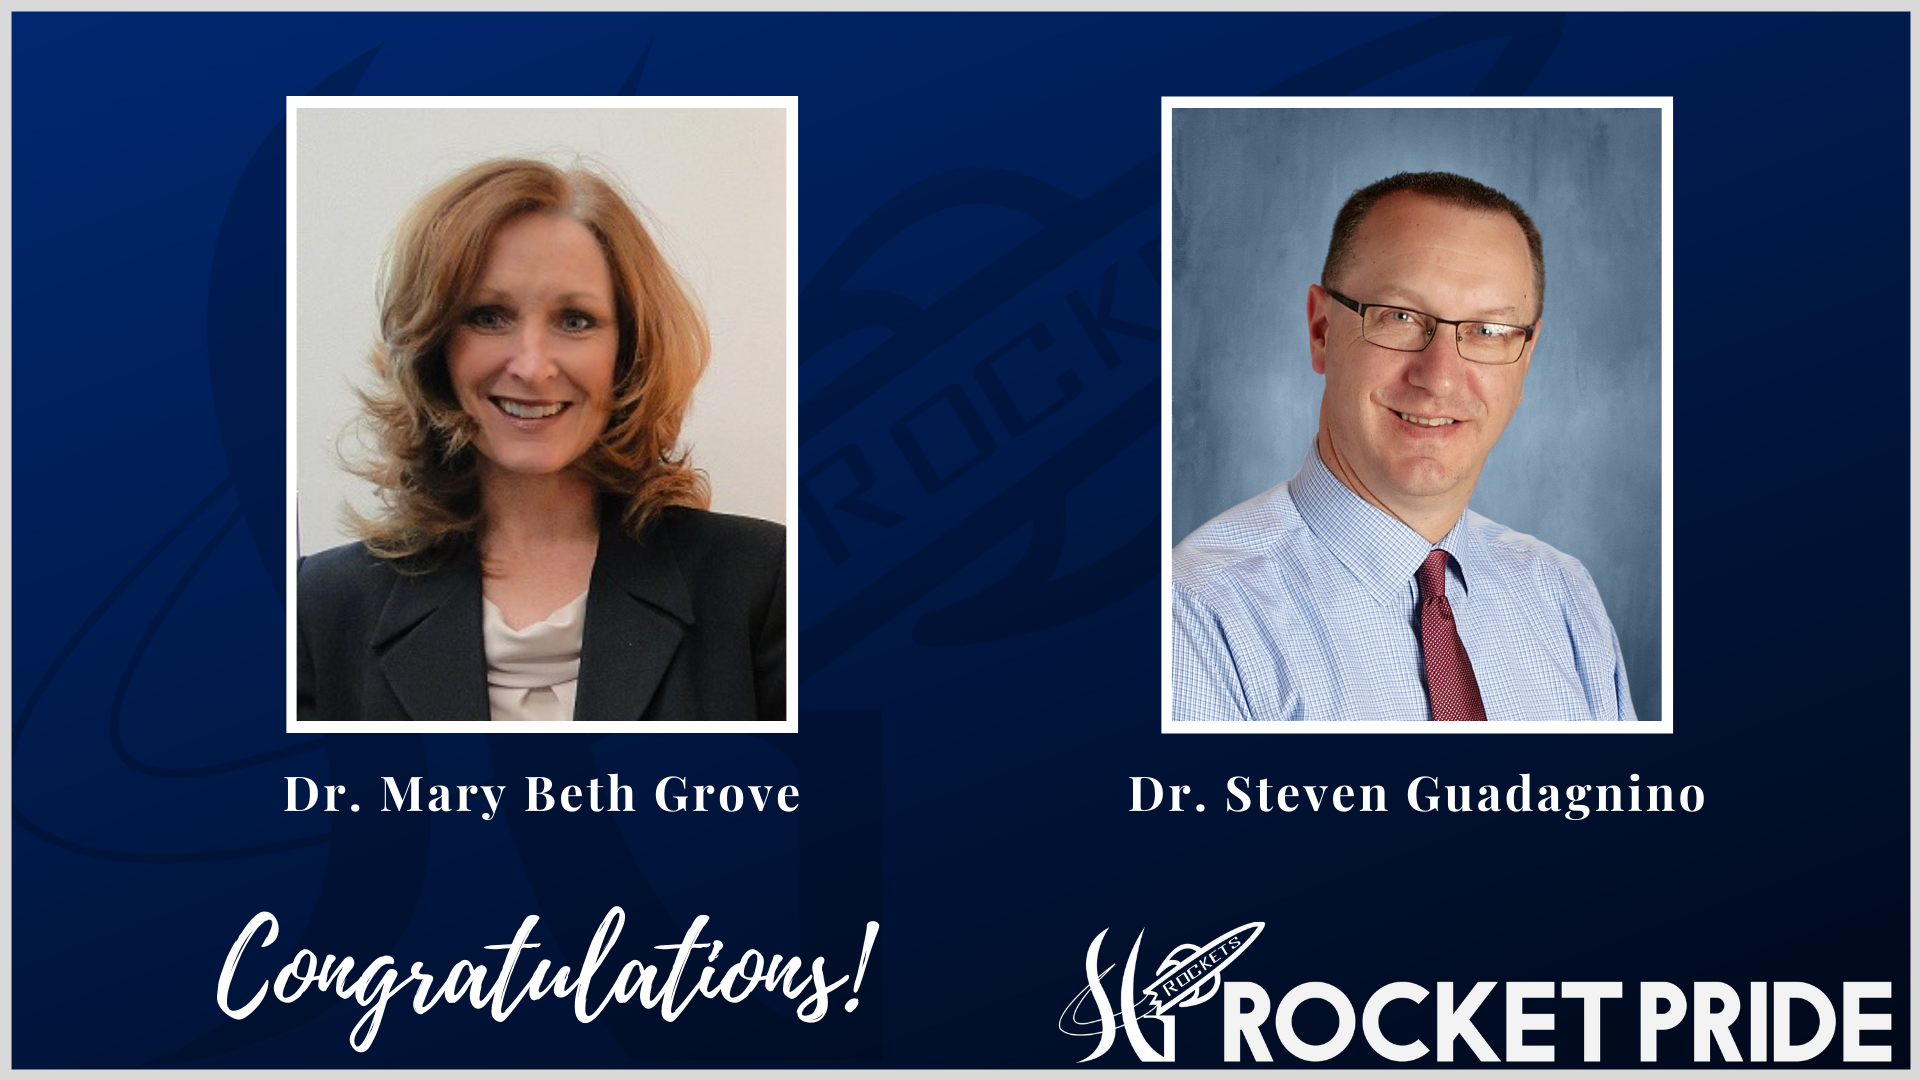 Congratulations, Dr. Mary Beth Grove and Dr. Steven Guadagnino!